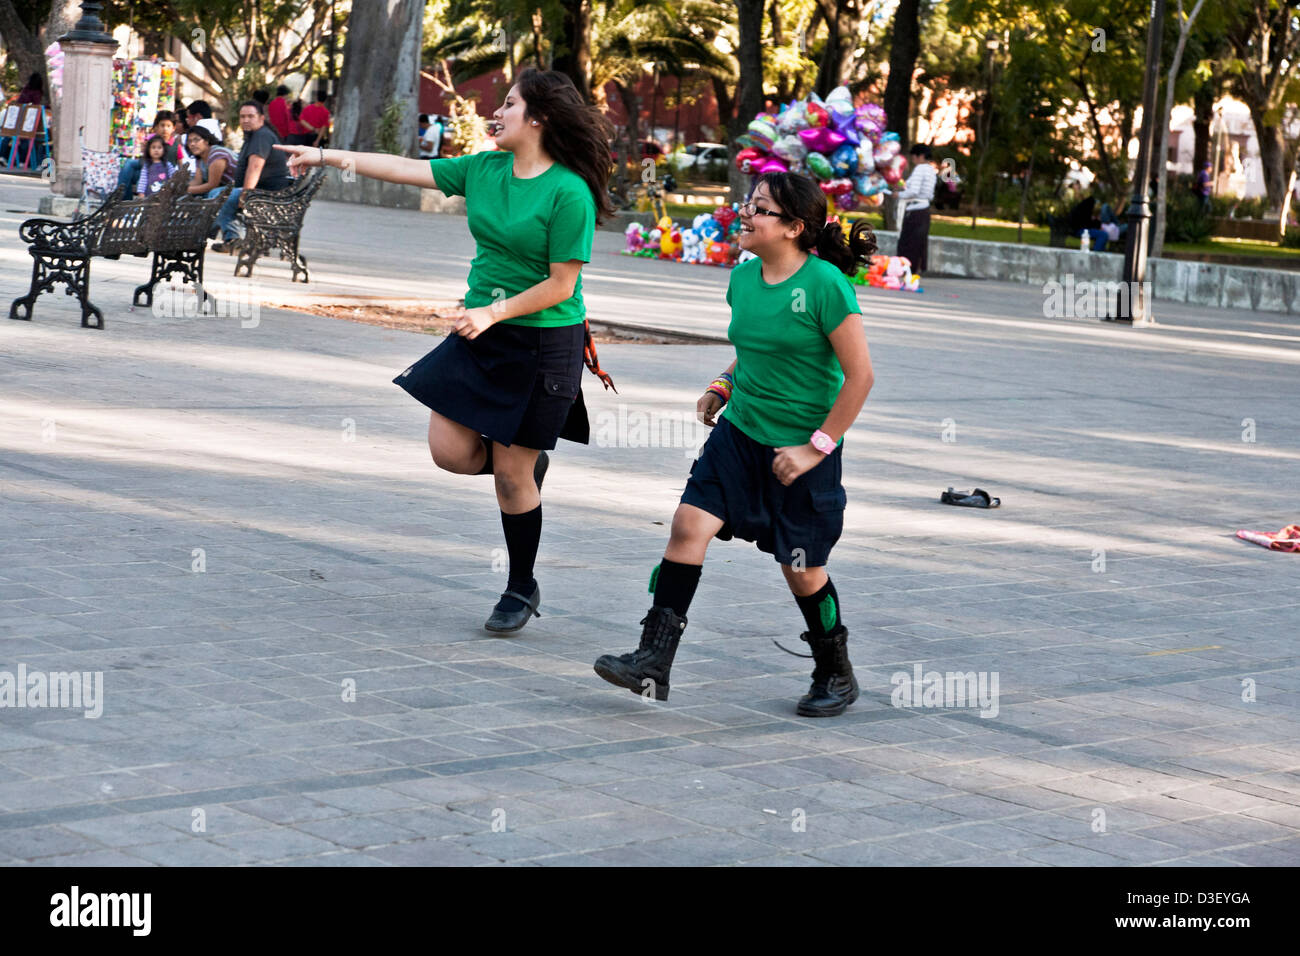 2 pretty tween girl scout scouts laughing as they run in handkerchief relay race as spectators watch Llano park - Stock Image